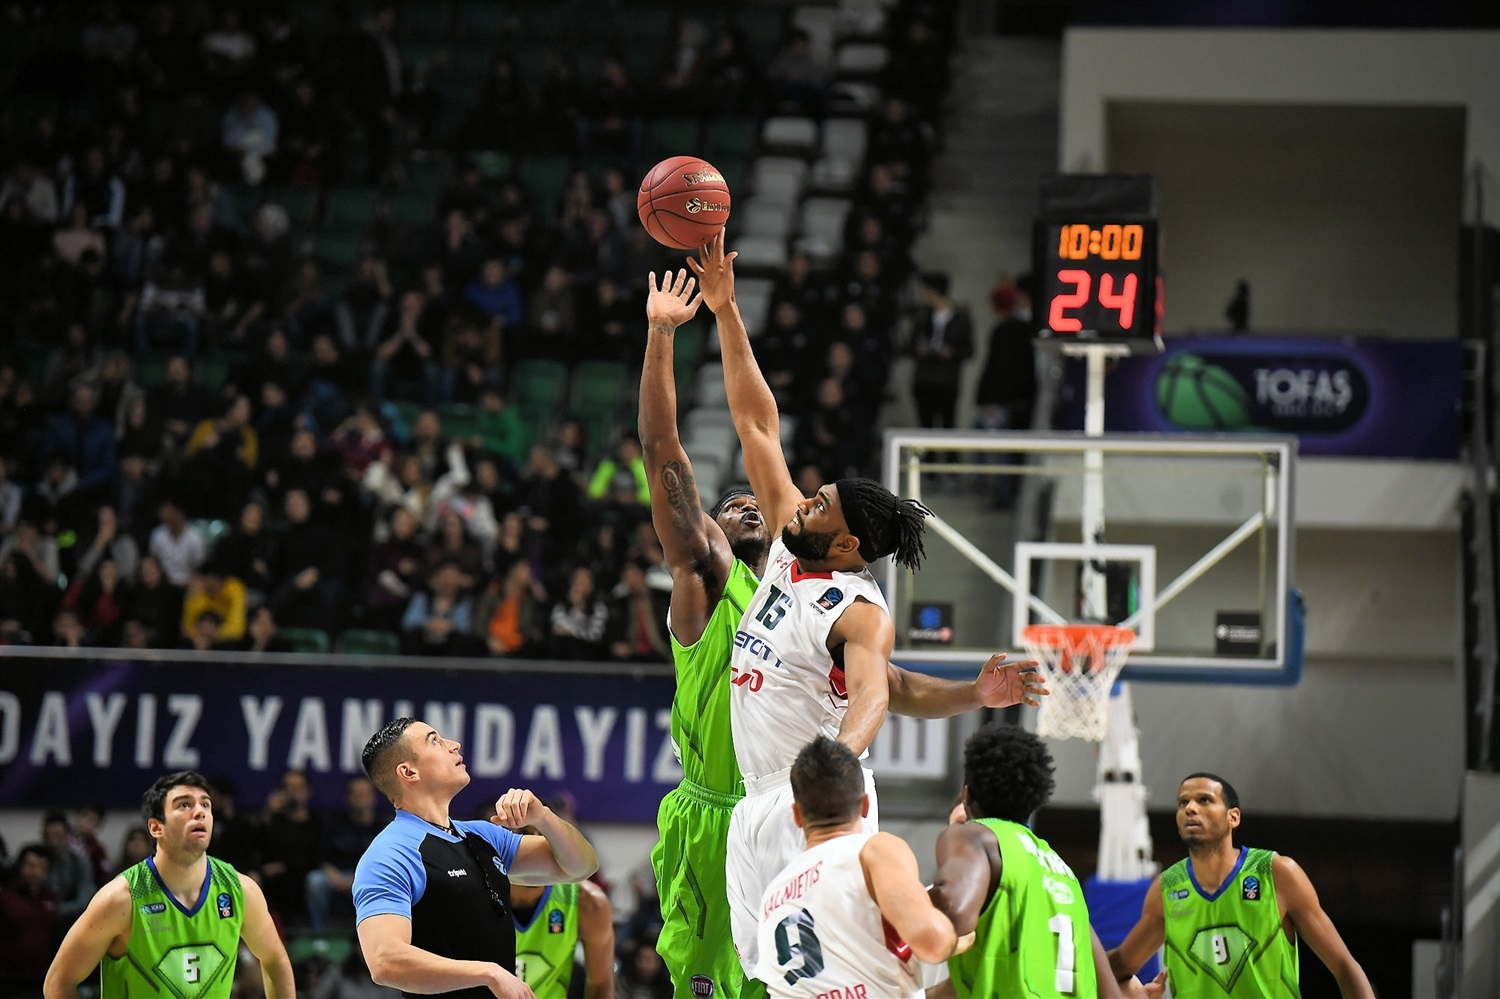 Alan Williams - Lokomotiv Kuban Krasnodar (photo Tofas - Ozan Demir) - EC19